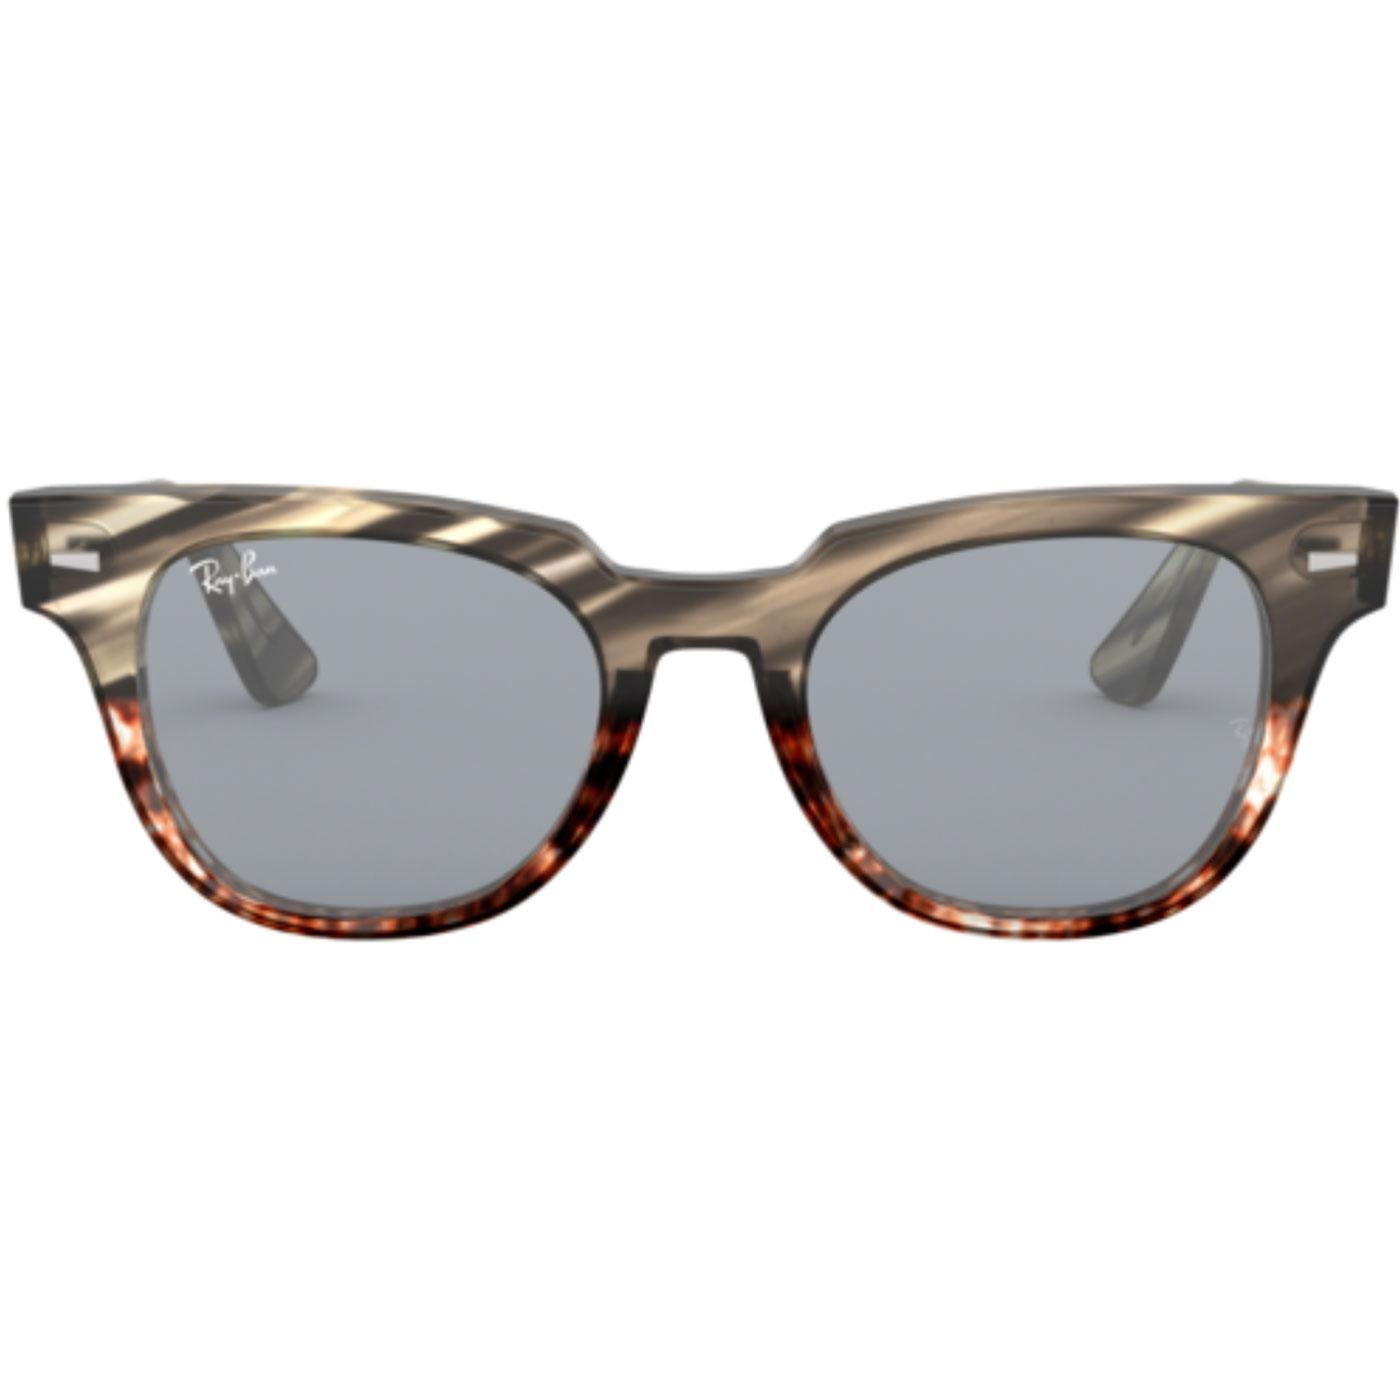 Meteor RAY-BAN Retro Striped Havana Sunglasses